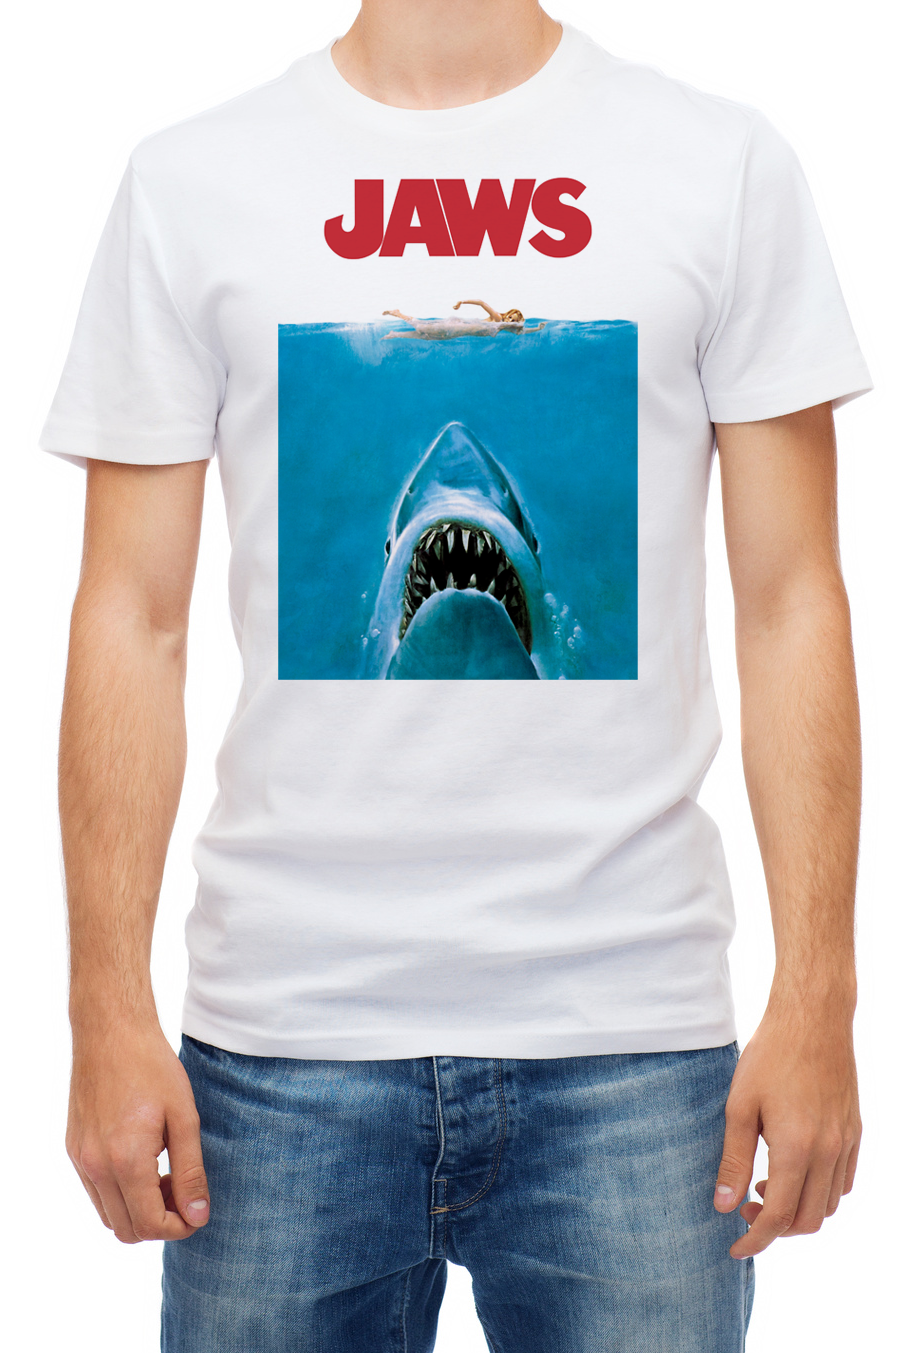 Jaws Distressed Shark Movie Men'S White Short Sleeve Cotton Tshirt image